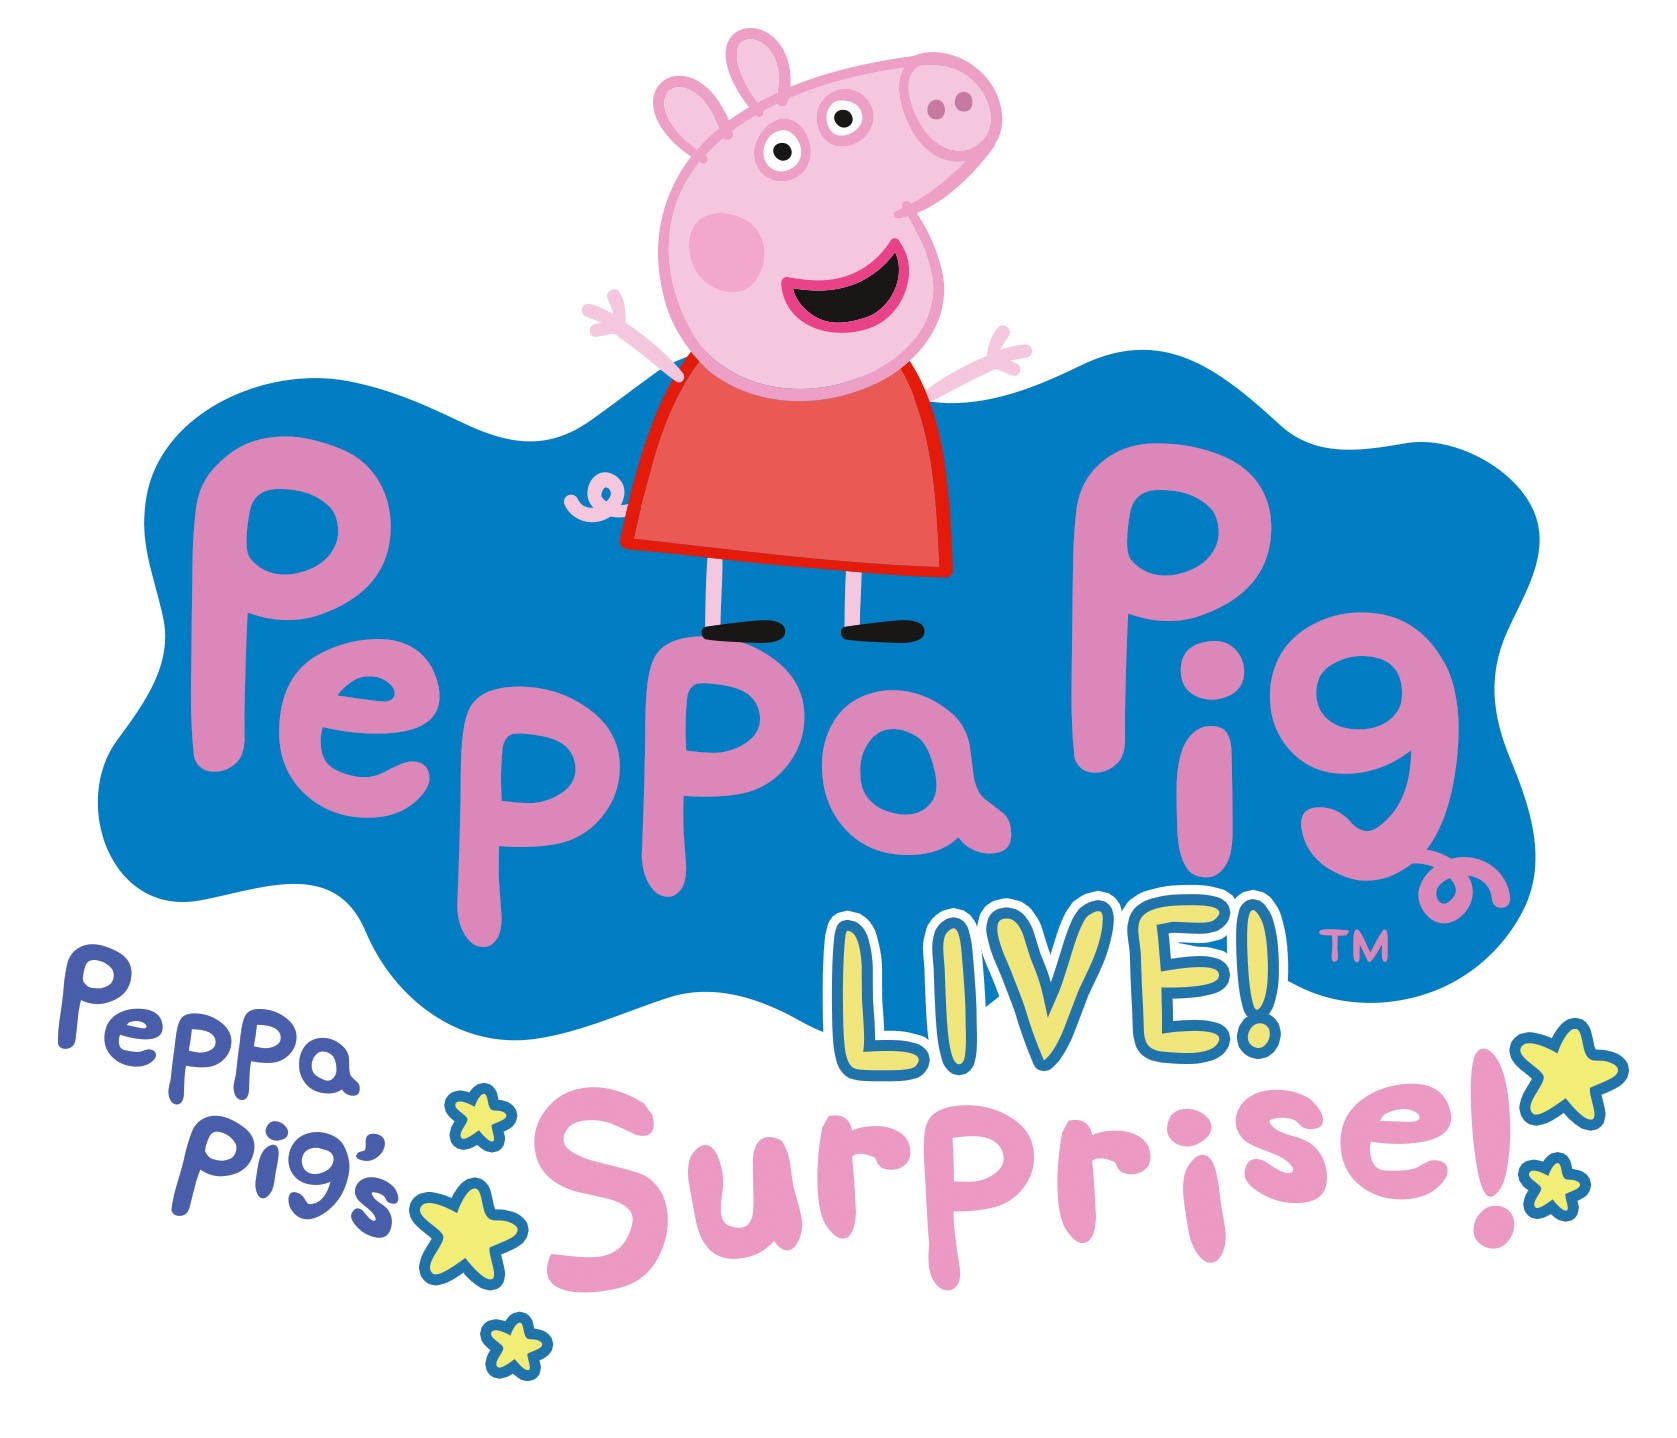 Peppa Pig Live Show Coming To The Modell Performing Arts Center at the Lyric – October 13